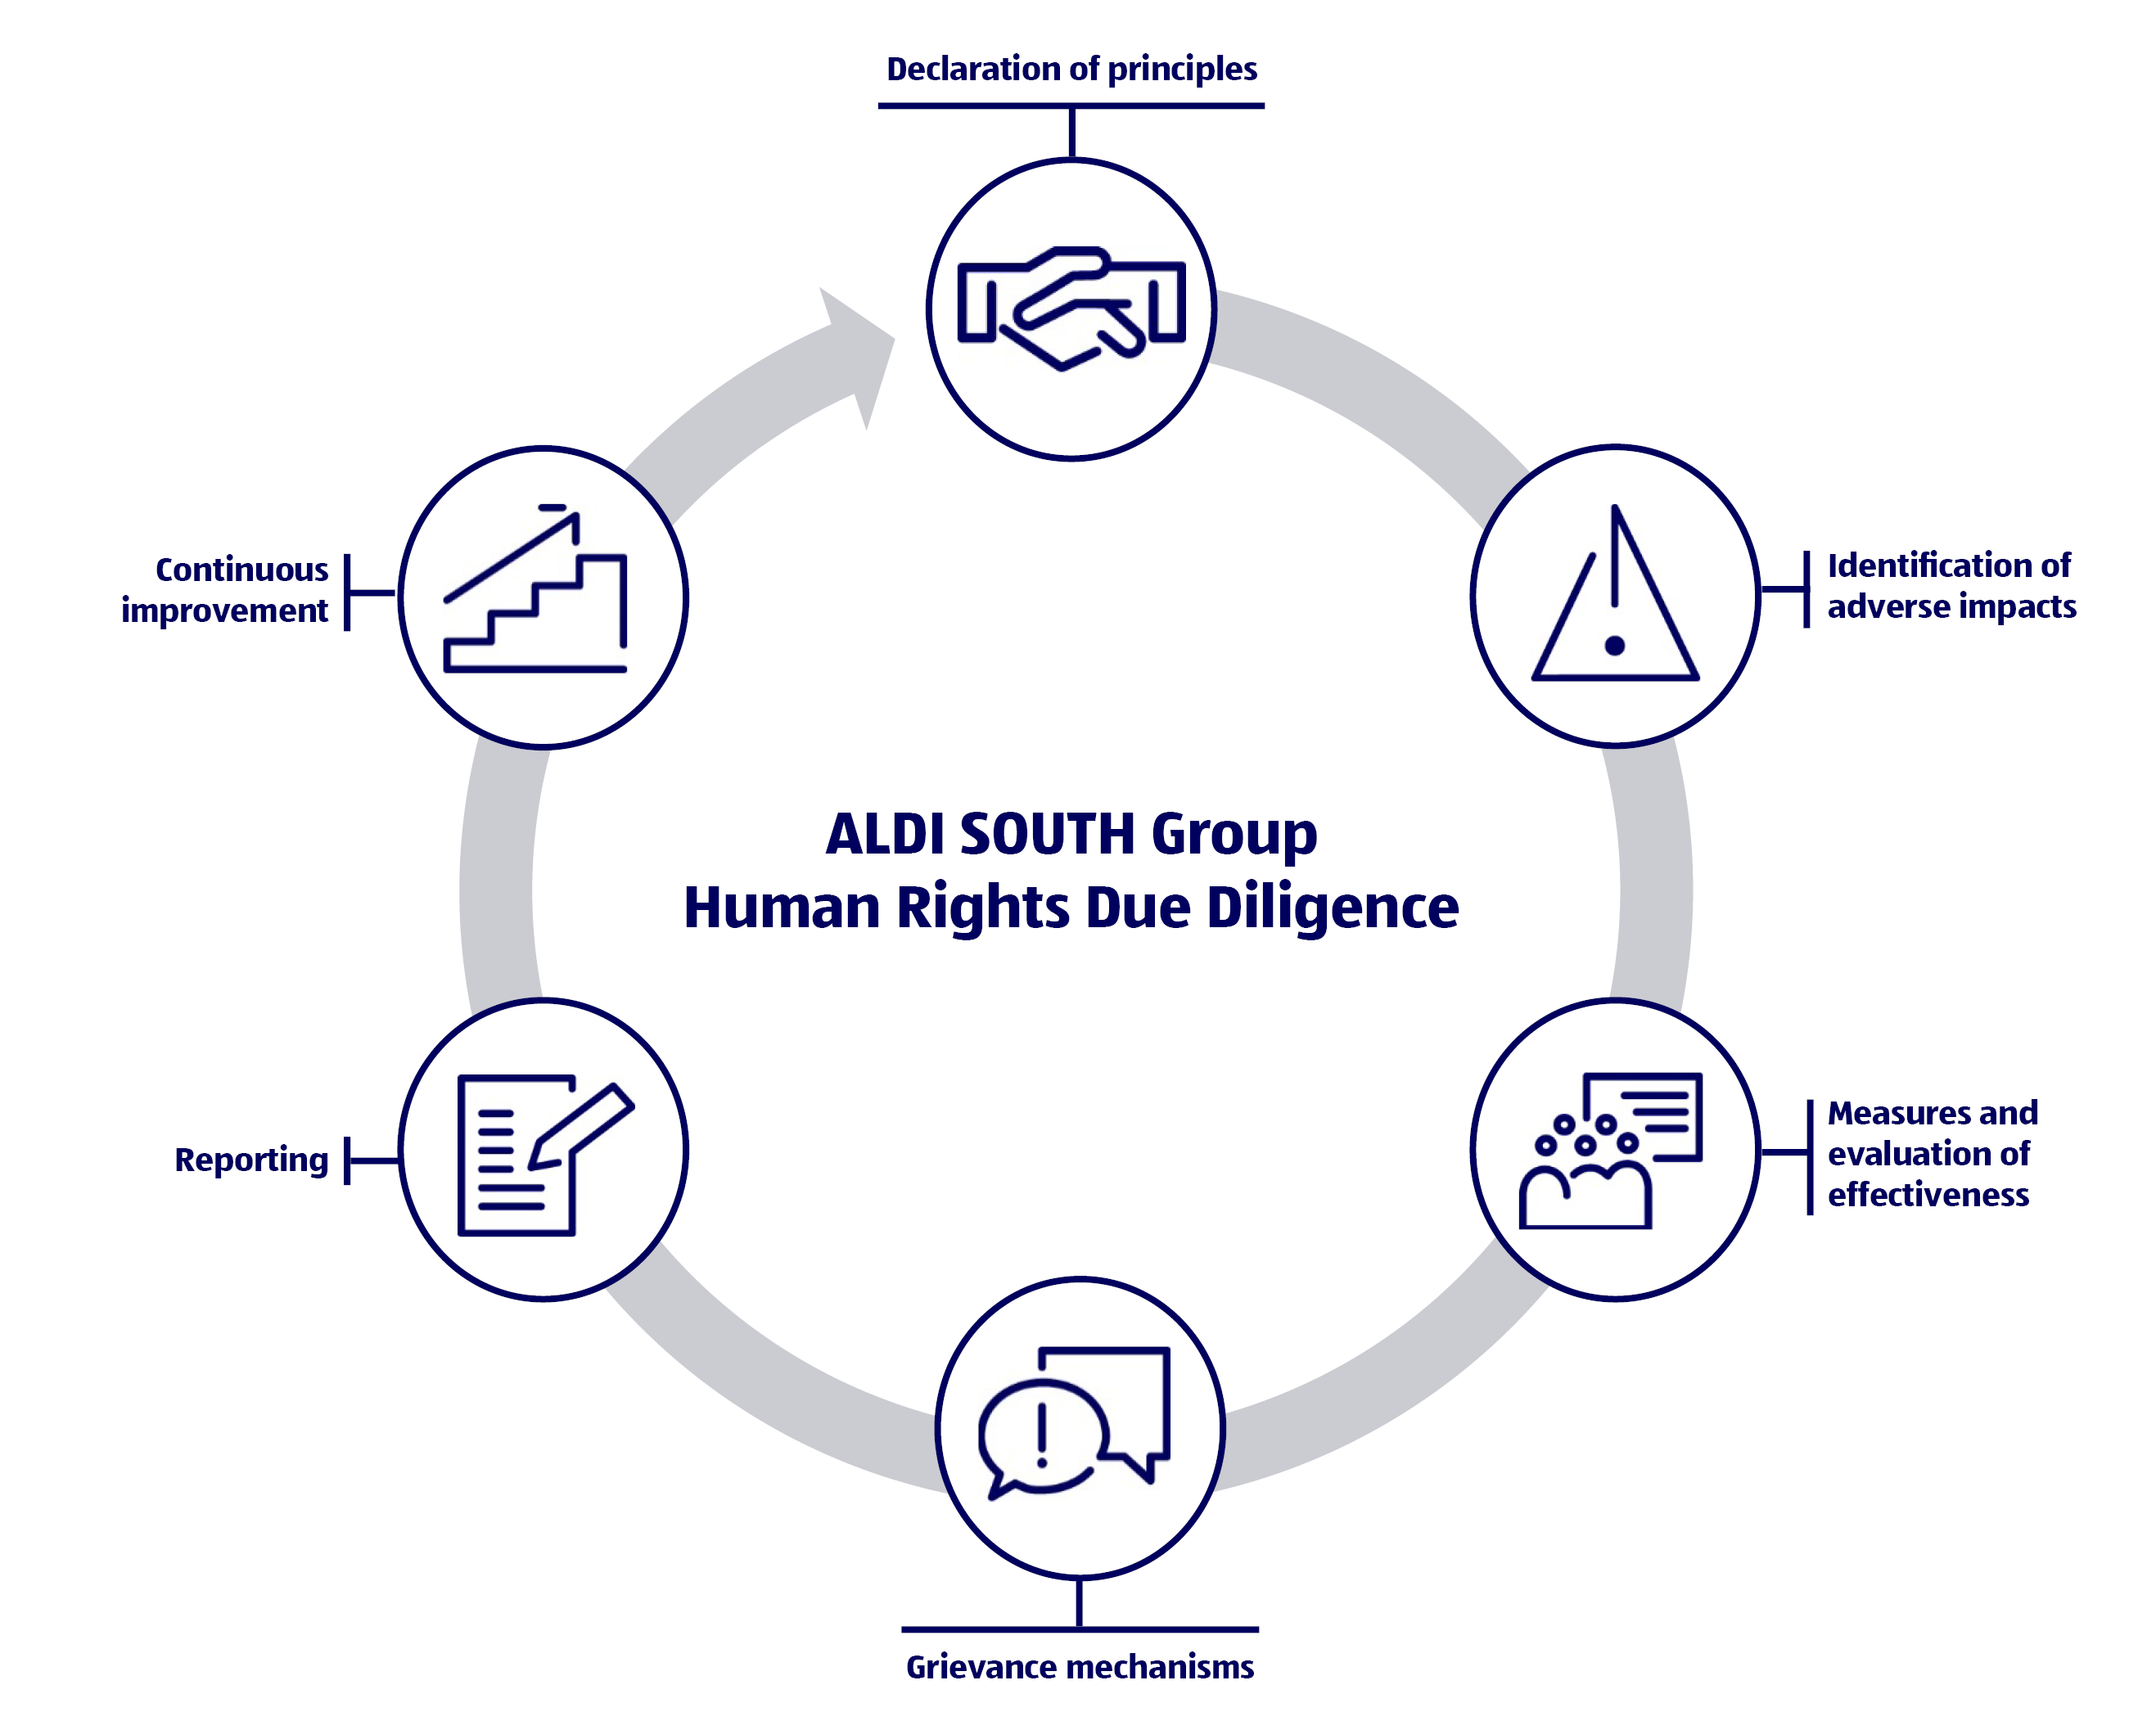 https://cr.aldisouthgroup.com/sites/default/files/downloads/20190528_Human%20Rights%20Schema_New_EN.pdf